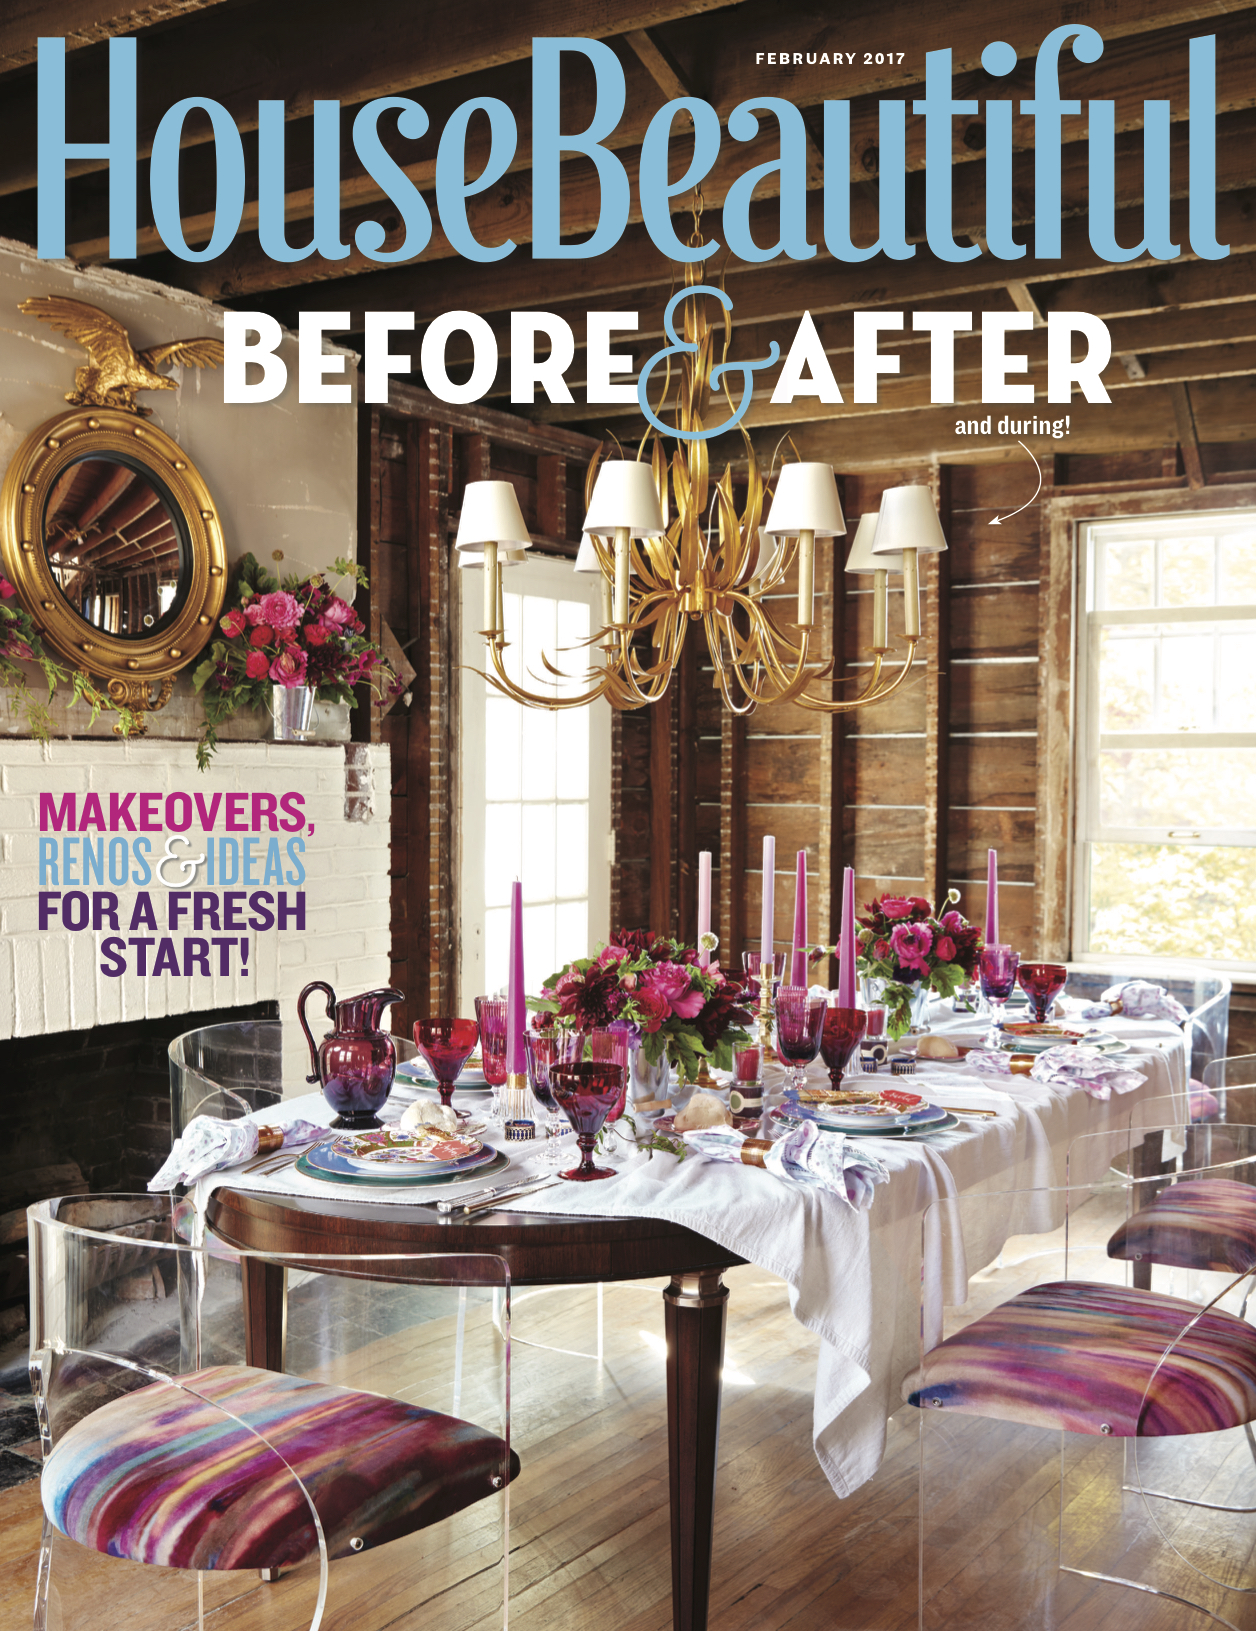 House Beautiful, Cover - Project Manager and Assistant Stylist